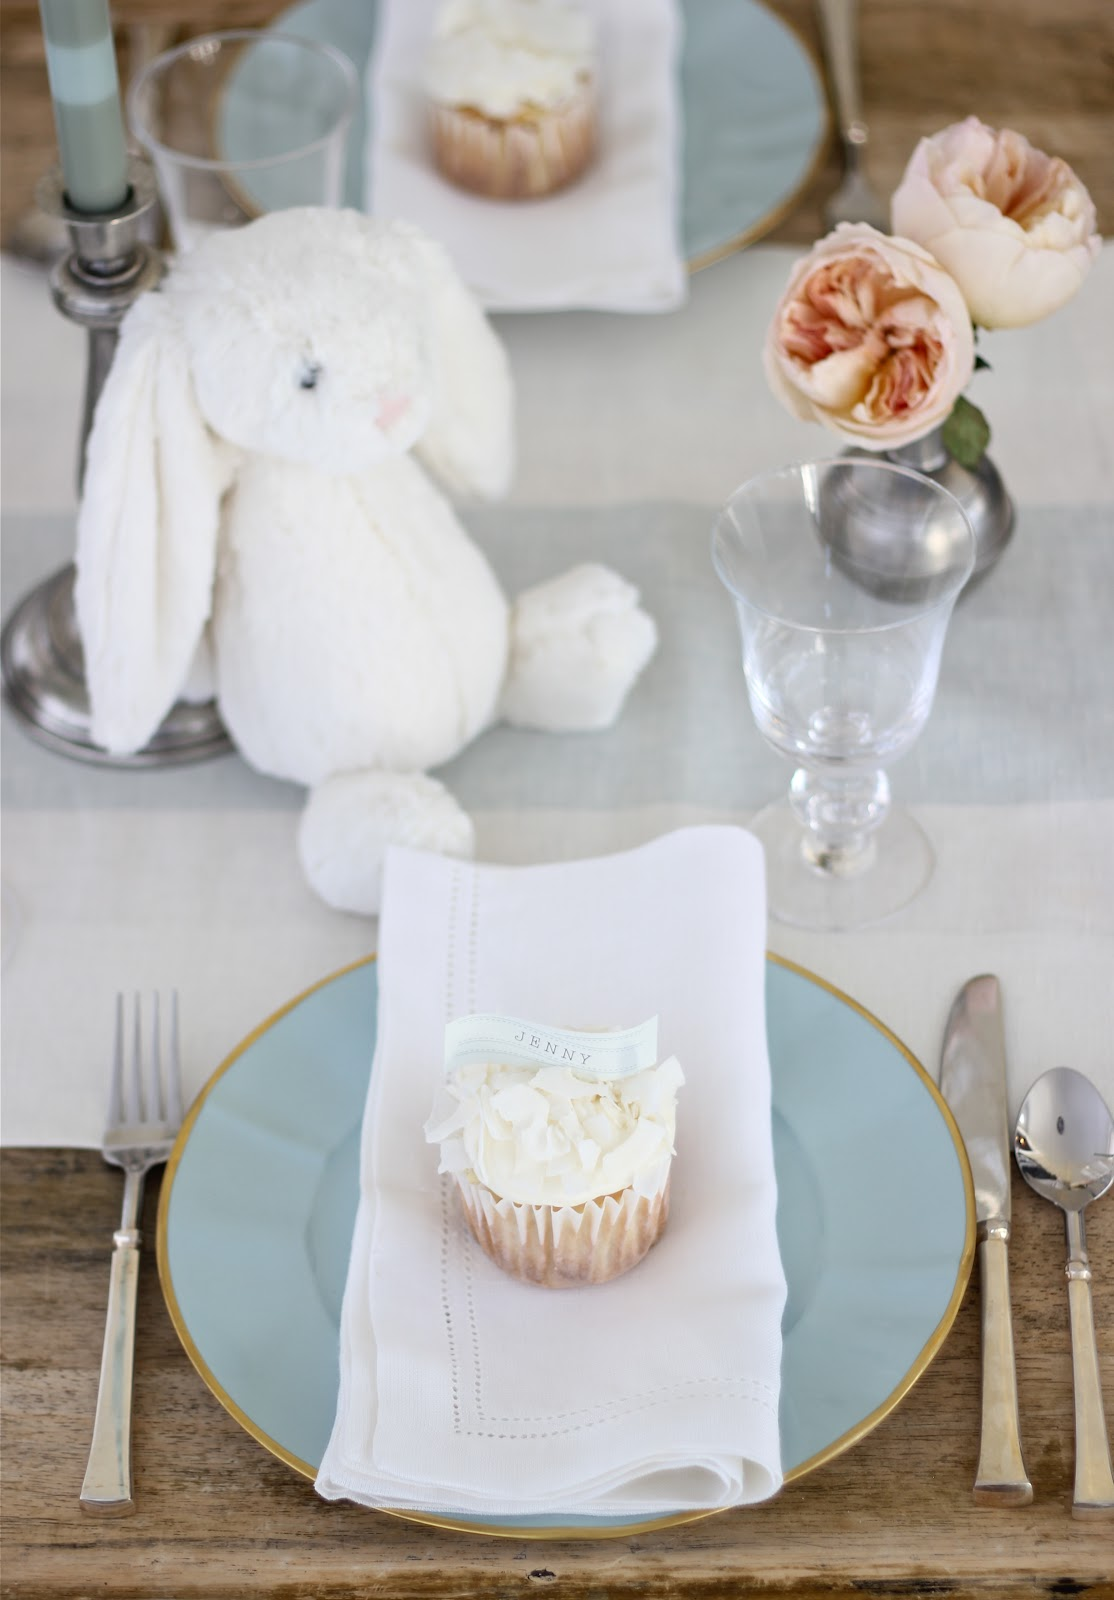 jenny steffens hobick  bunny baby shower table setting  u0026 menu